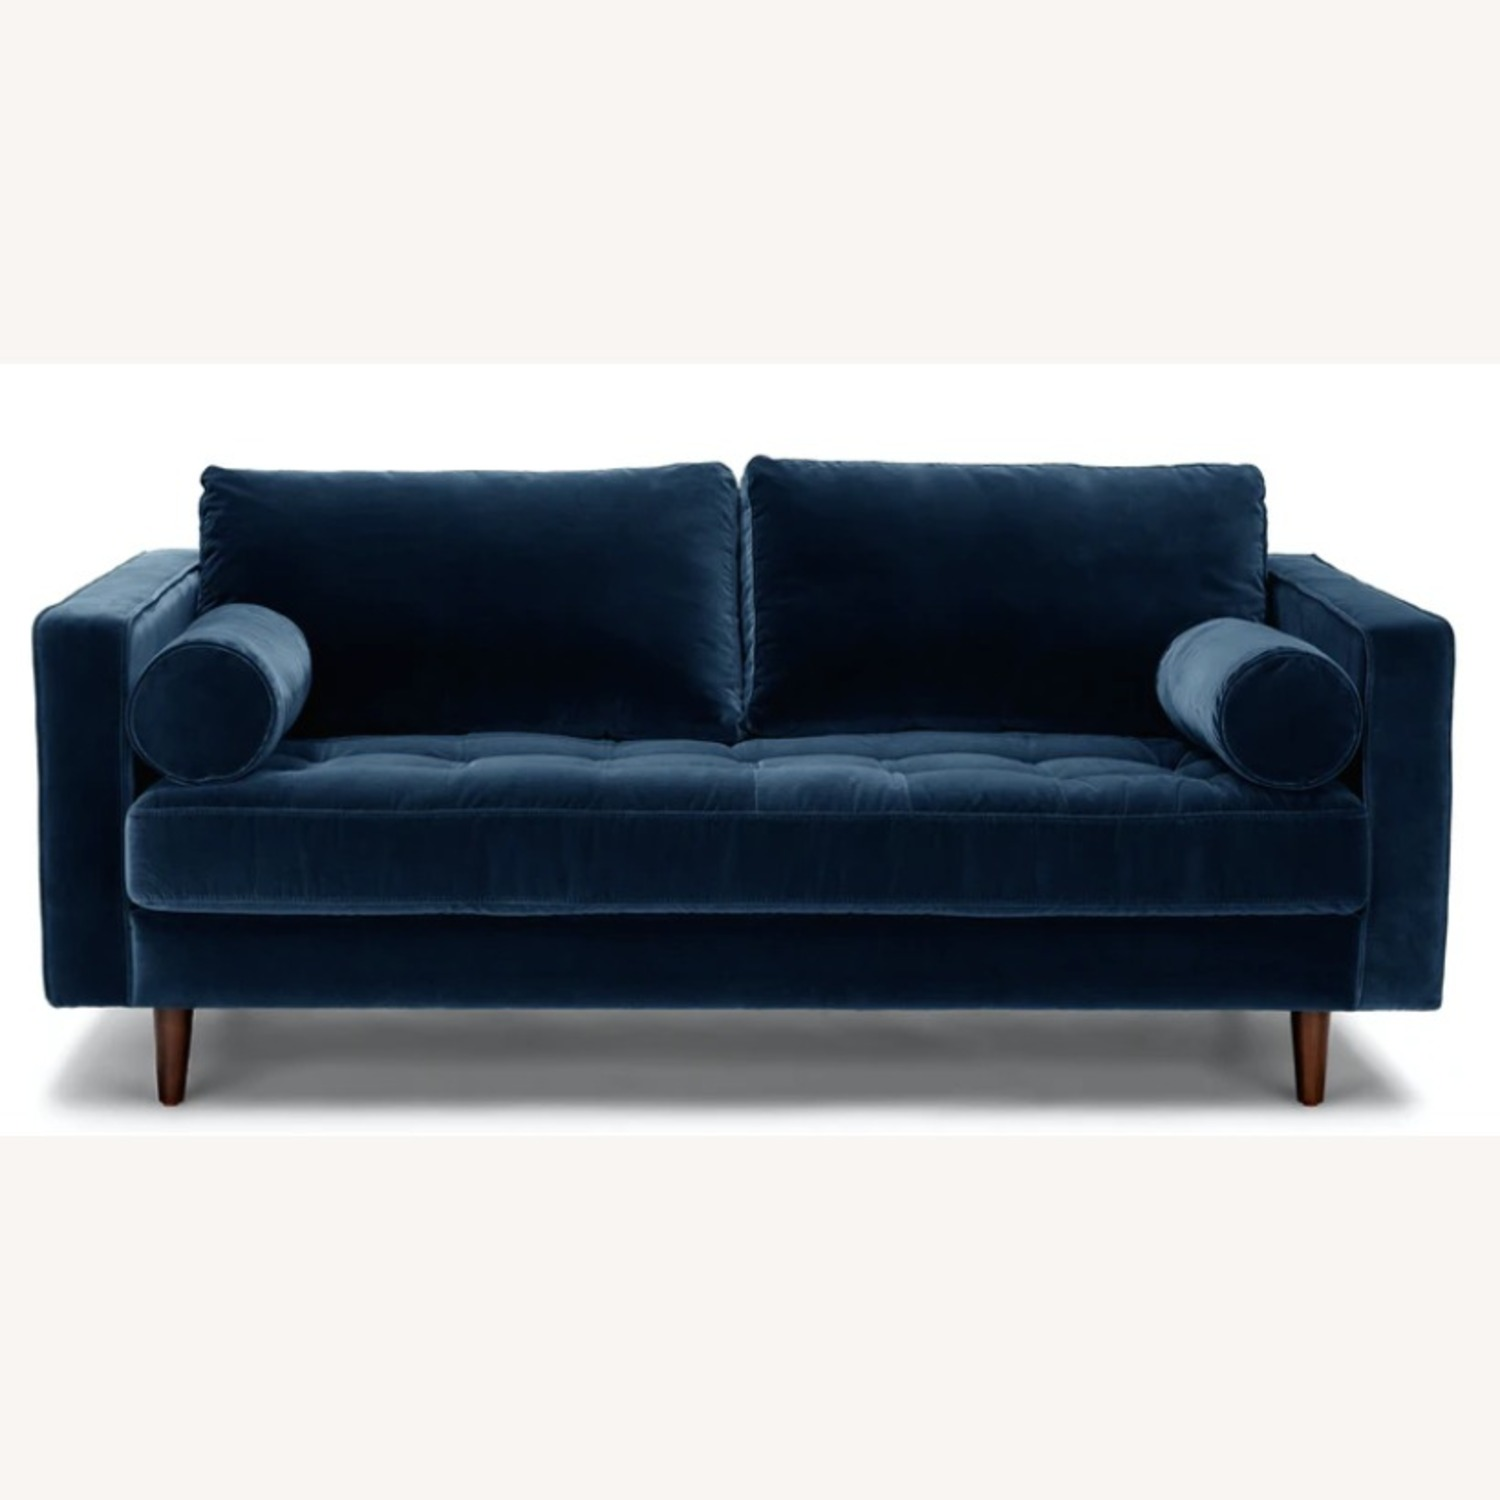 Article Sven Cascadia Blue Velvet Sofa - image-0